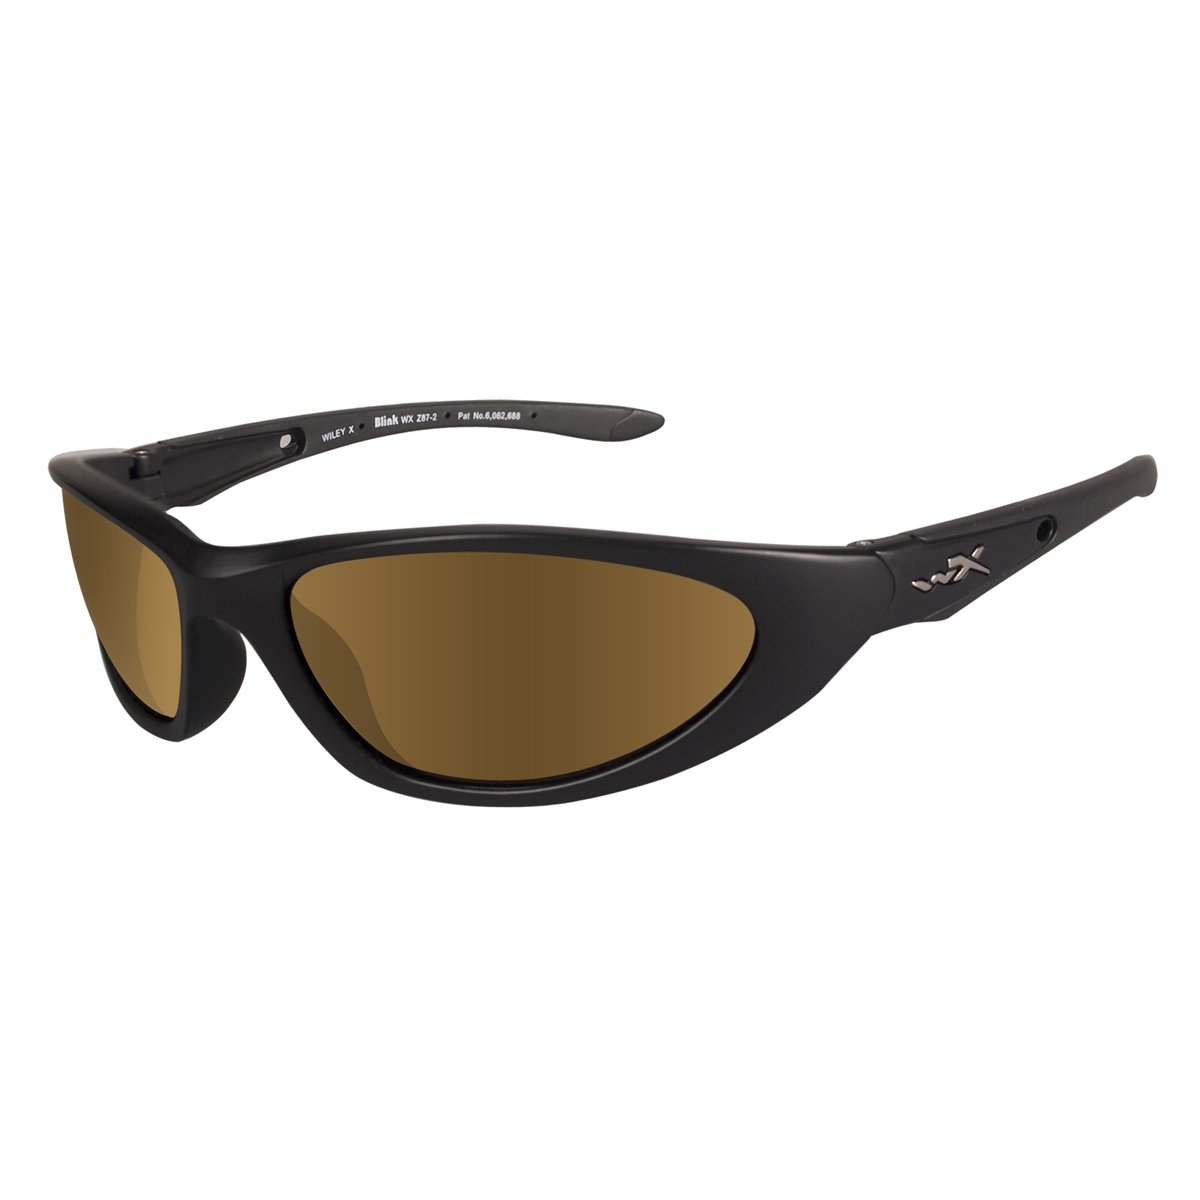 Wiley x fishing polarized sunglasses for Polarized fishing sunglasses